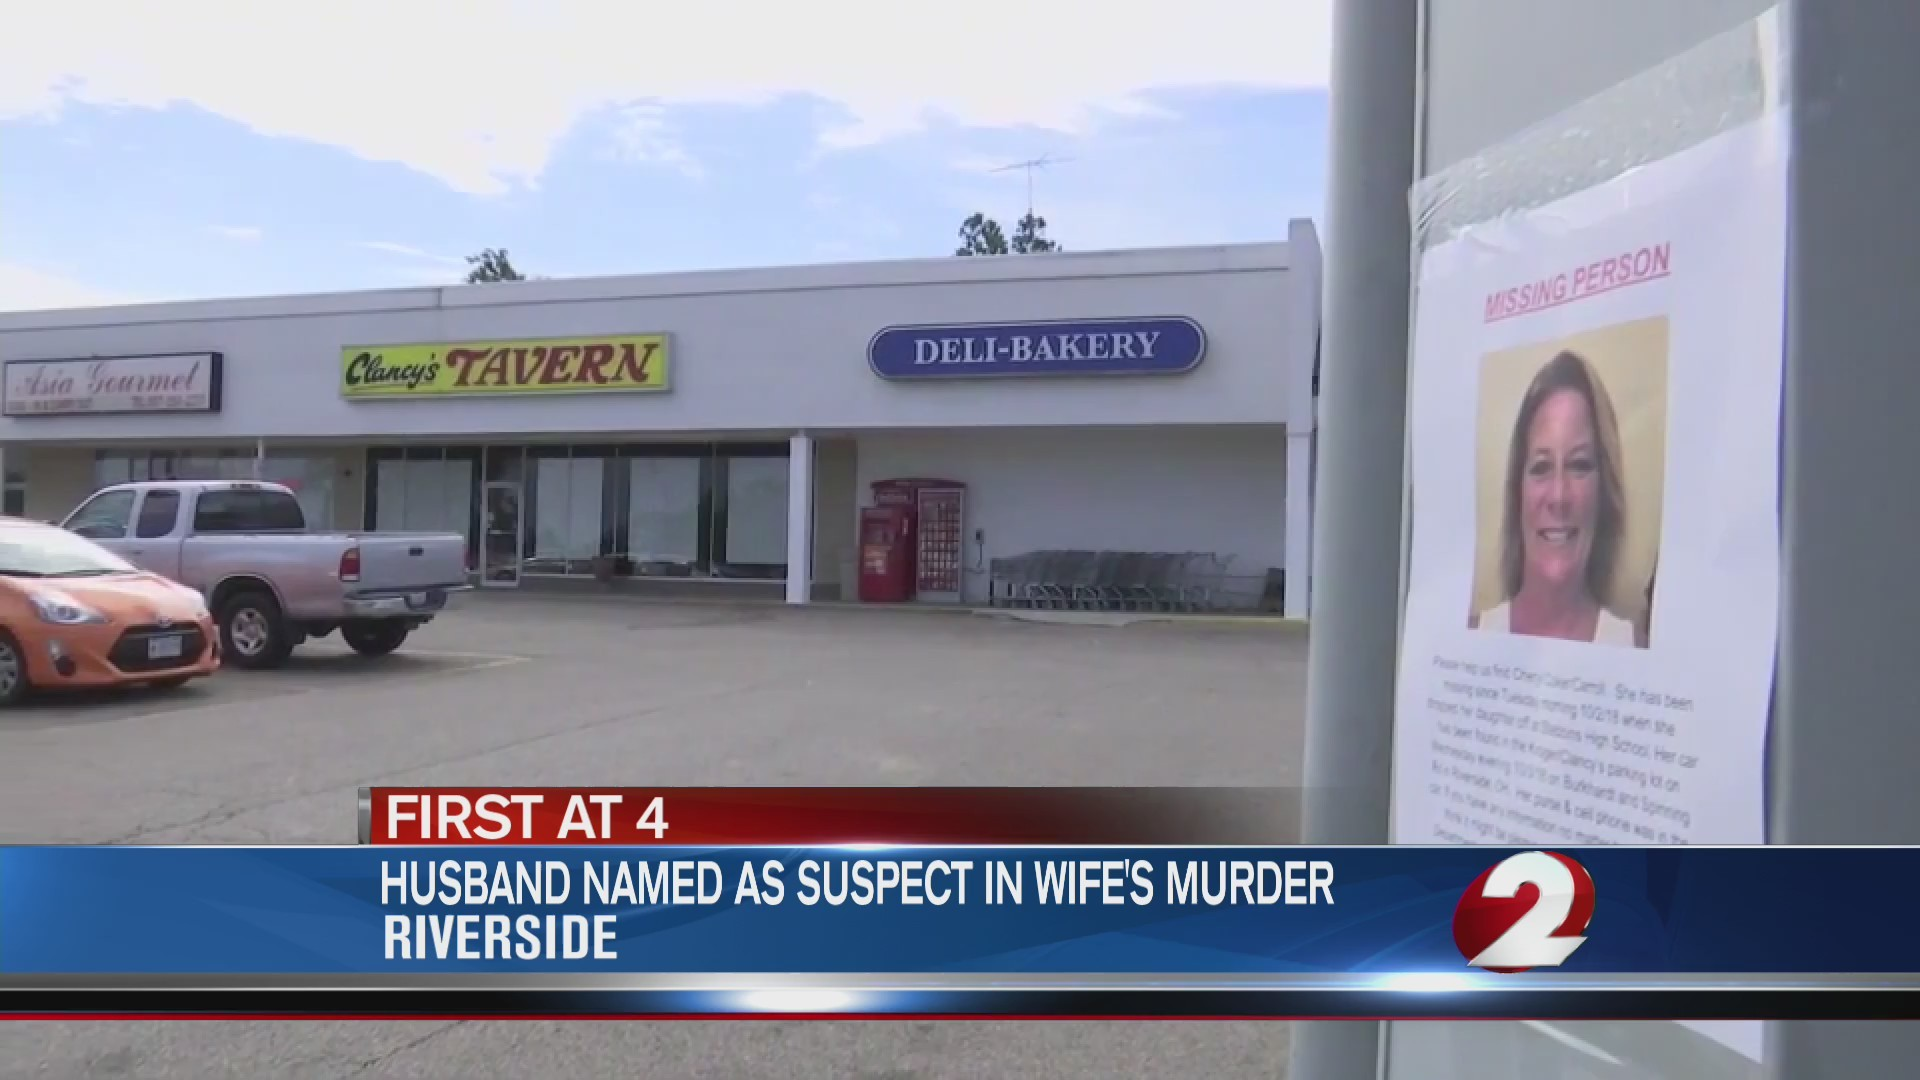 Husband named as suspect in wife's murder